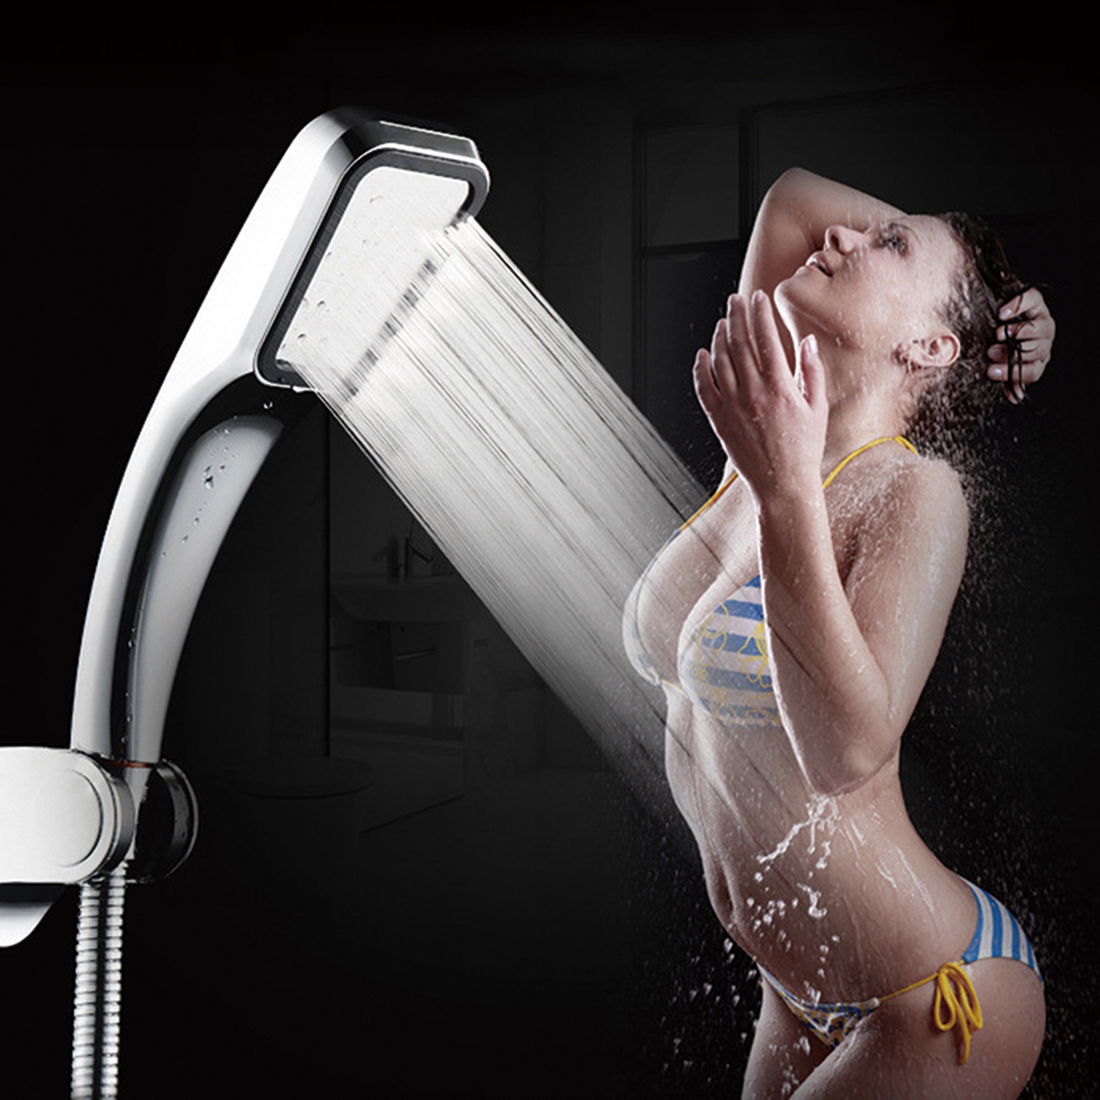 New Arrival 30% Water Saving 100% Pressure Boost Shower Head 300 Holes Quality ABS Nano Plating Hand Hold Bathroom Shower Head